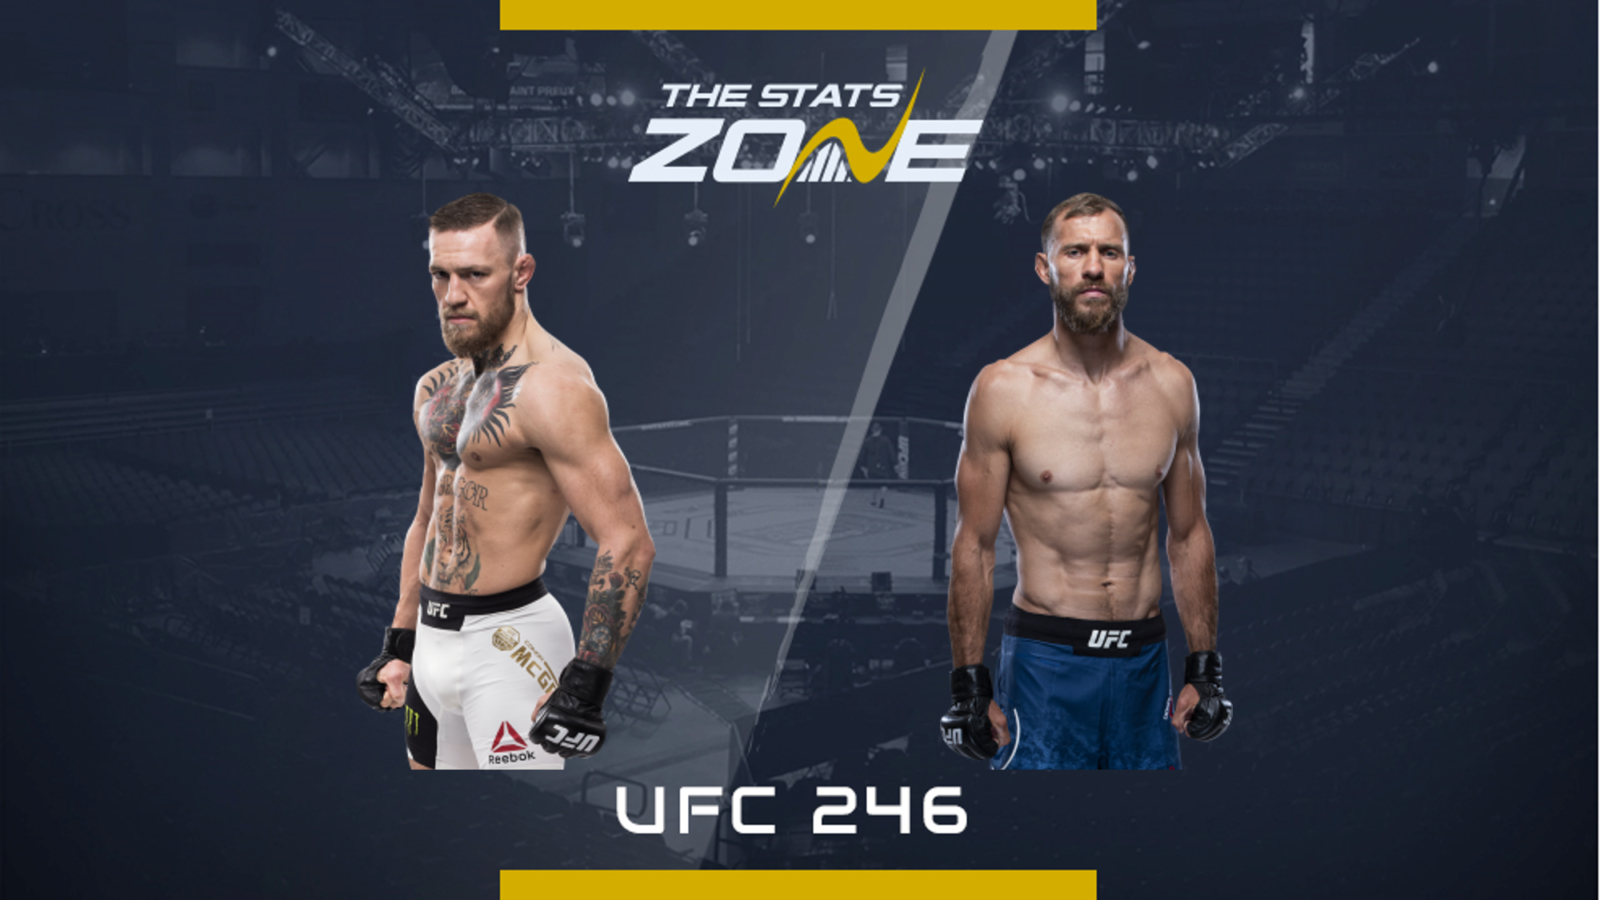 Mma Preview Conor Mcgregor Vs Donald Cerrone At Ufc 246